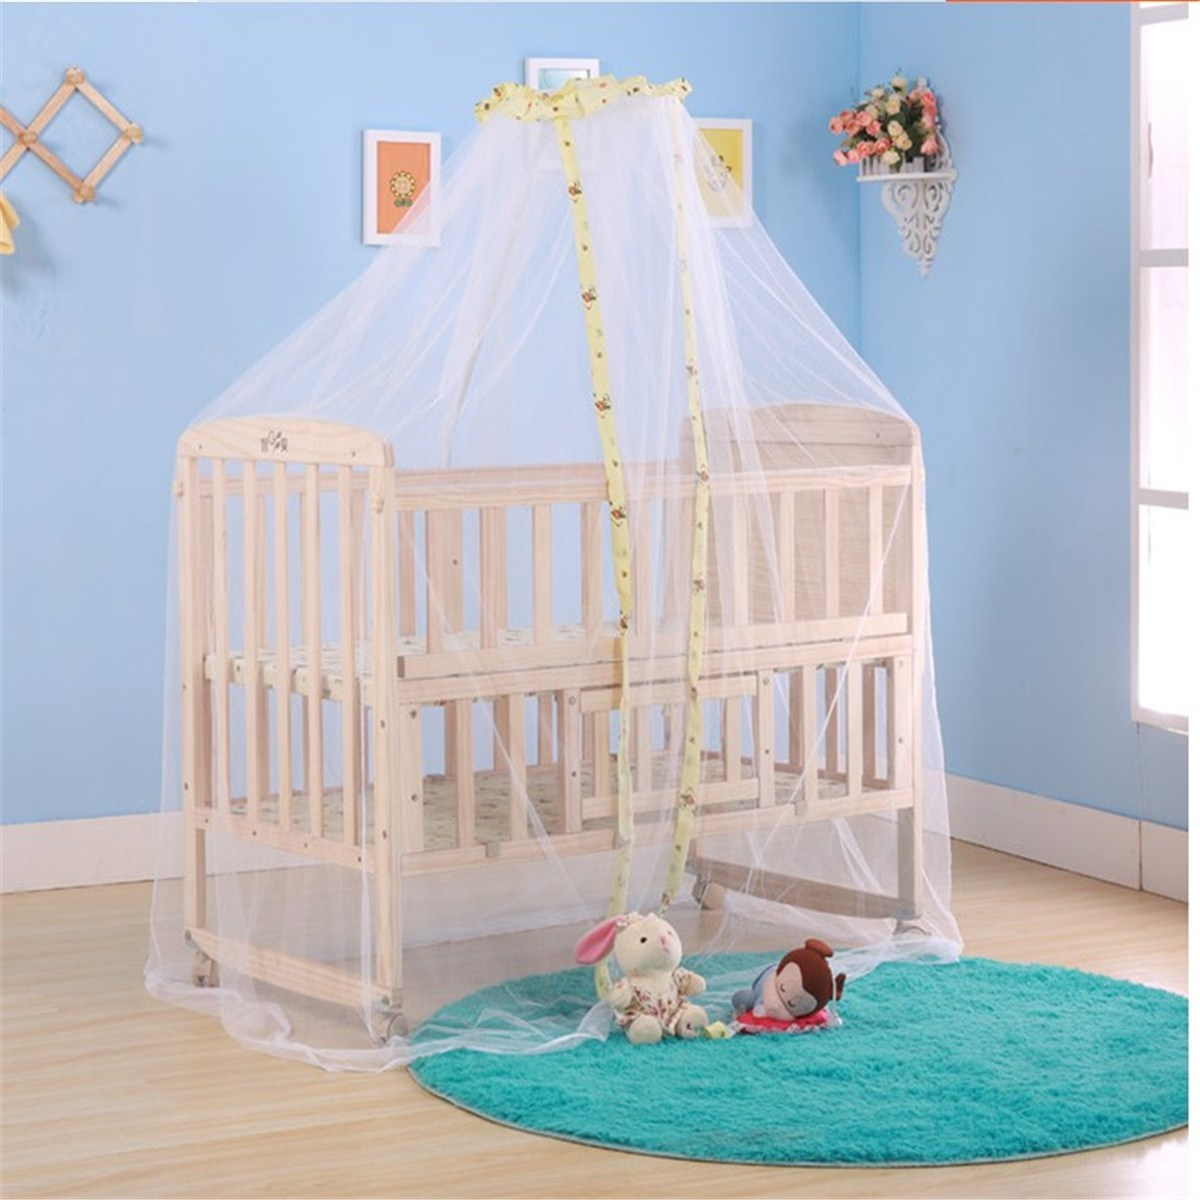 Baby bed accessories - Infant Baby Protect Summer Mosquito Net Newborn Crib Cot Bed Accessories Lovely Design Toddler Favor Durable Blue Yellow